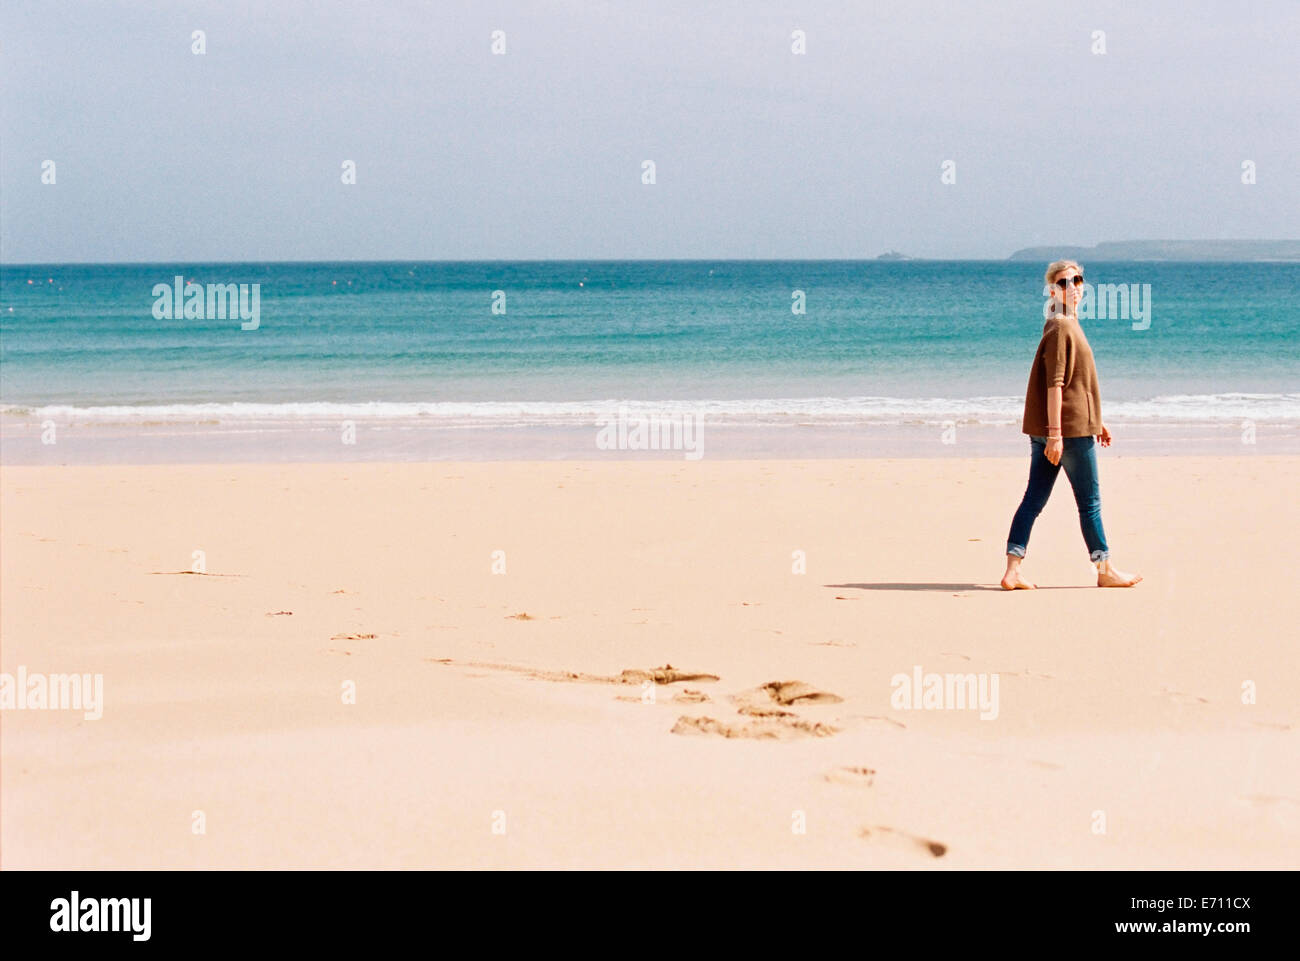 A woman walking barefoot on a beach, leaving footprints in the sand. - Stock Image